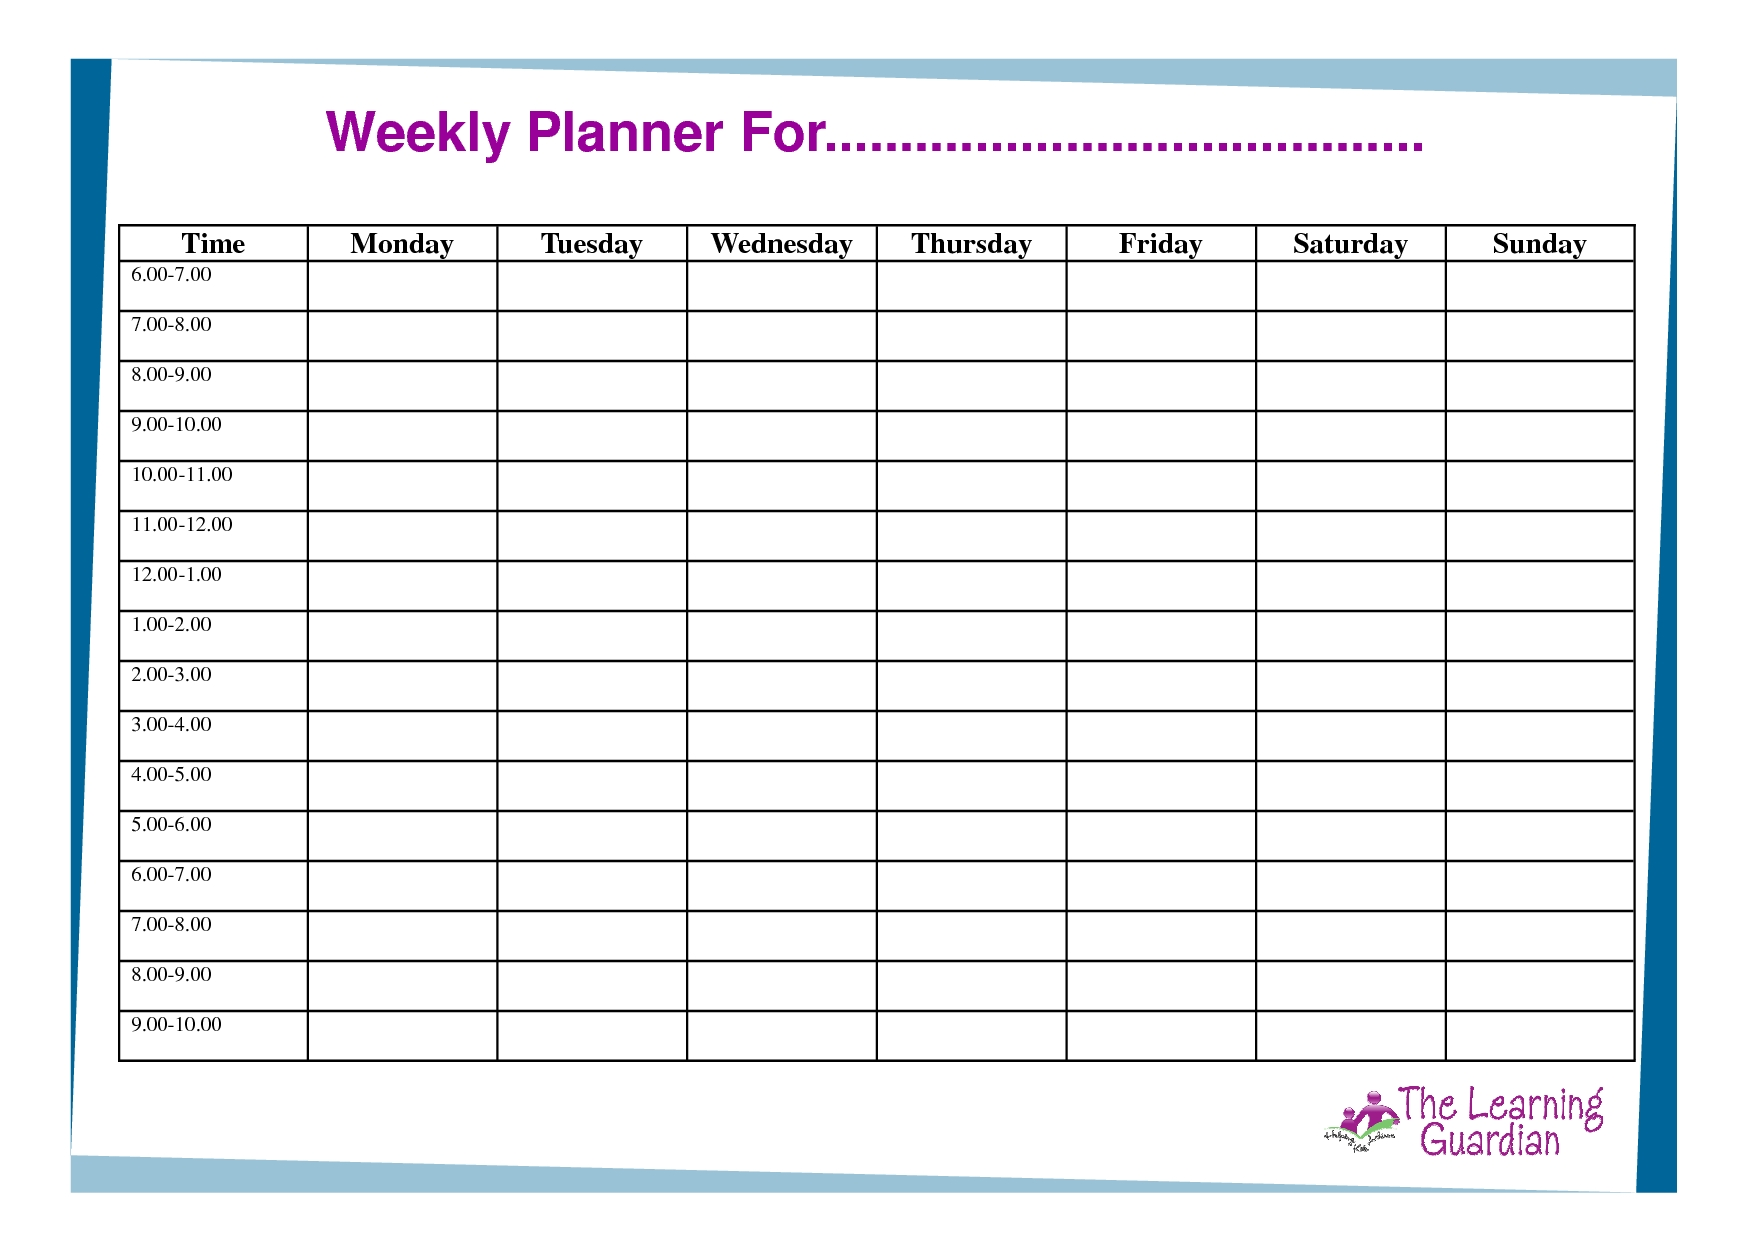 Free Printable Weekly Calendar Templates | Weekly Planner intended for 7 Day Week Schedule Calendar Pdf